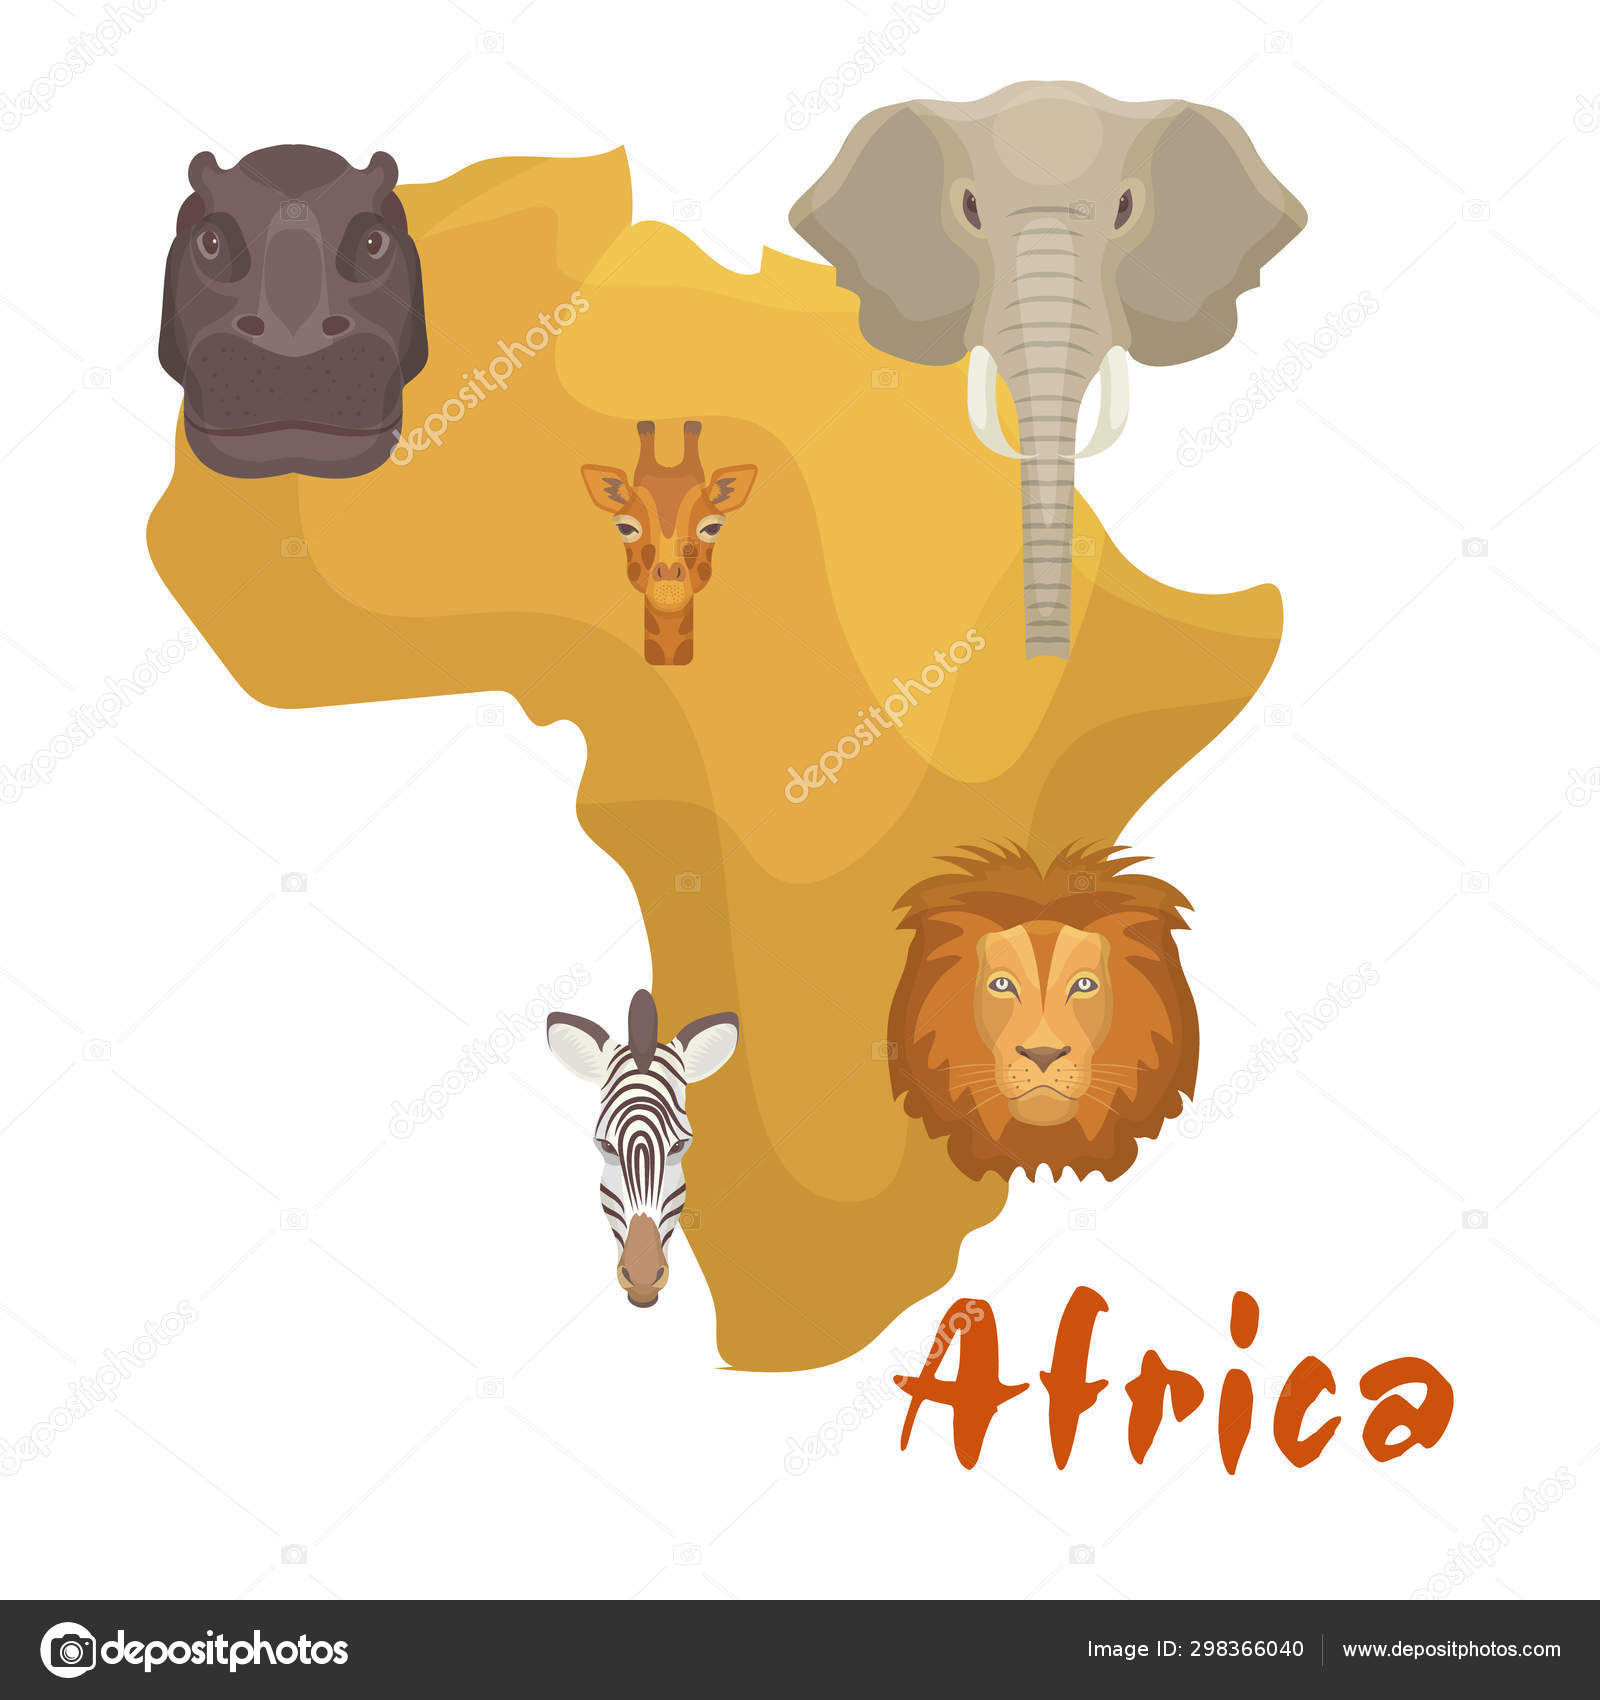 Africa animals map or continent vector illustration. Lion ... on savanna africa weather, savanna east africa, savanna people, savanna climate, savanna africa brochure, the african savanna map, savanna in africa, savanna giraffe, african savanna location map, savanna south africa, south african savanna map, savanna food chain, savanna biome, savanna name, east african savanna map, savanna animals, savanna vegetation, savanna fire, kalahari desert map, african savanna on a map,